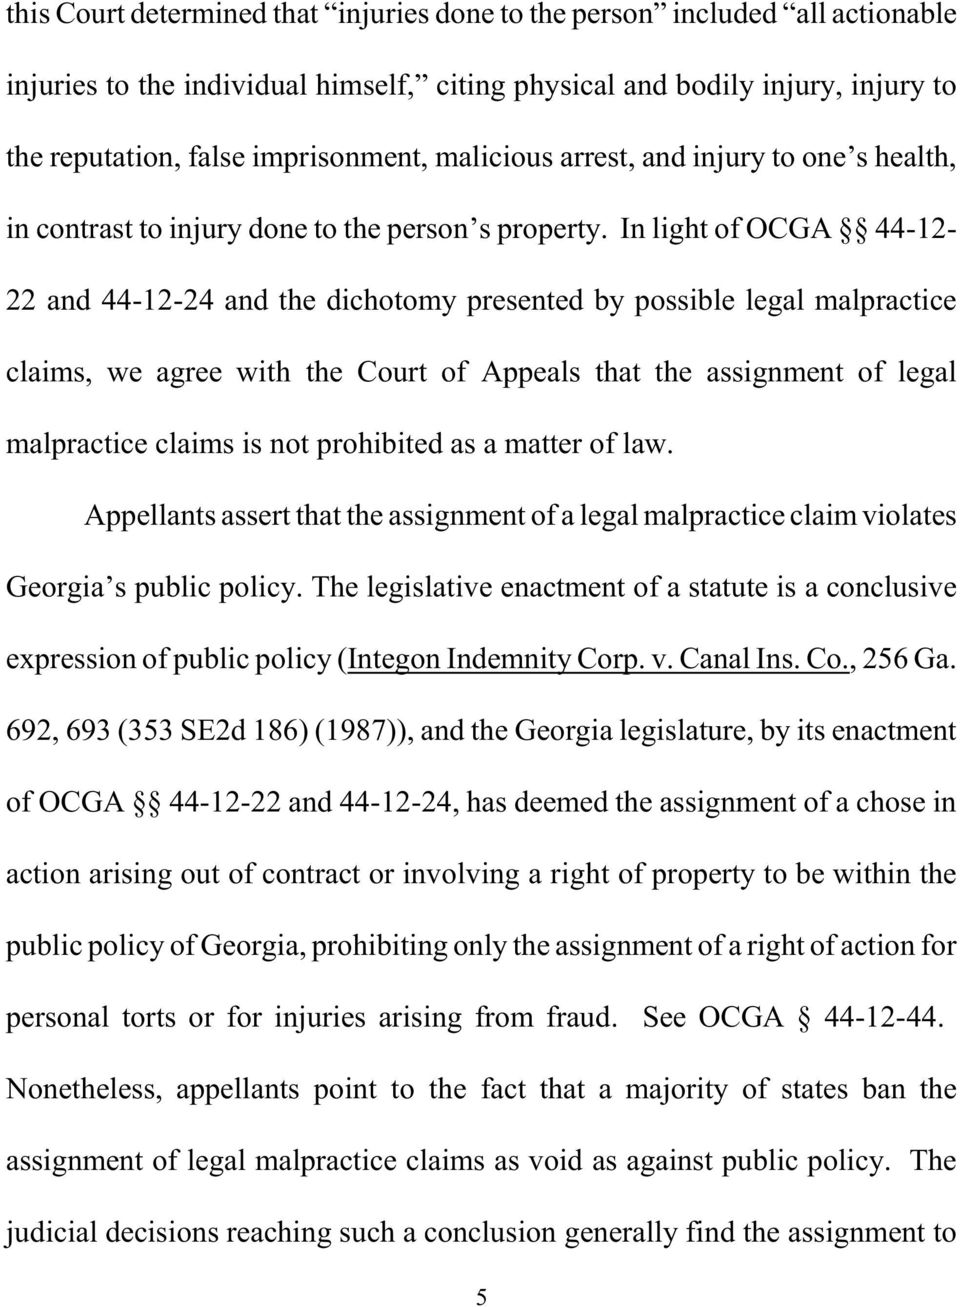 In light of OCGA 44-12- 22 and 44-12-24 and the dichotomy presented by possible legal malpractice claims, we agree with the Court of Appeals that the assignment of legal malpractice claims is not